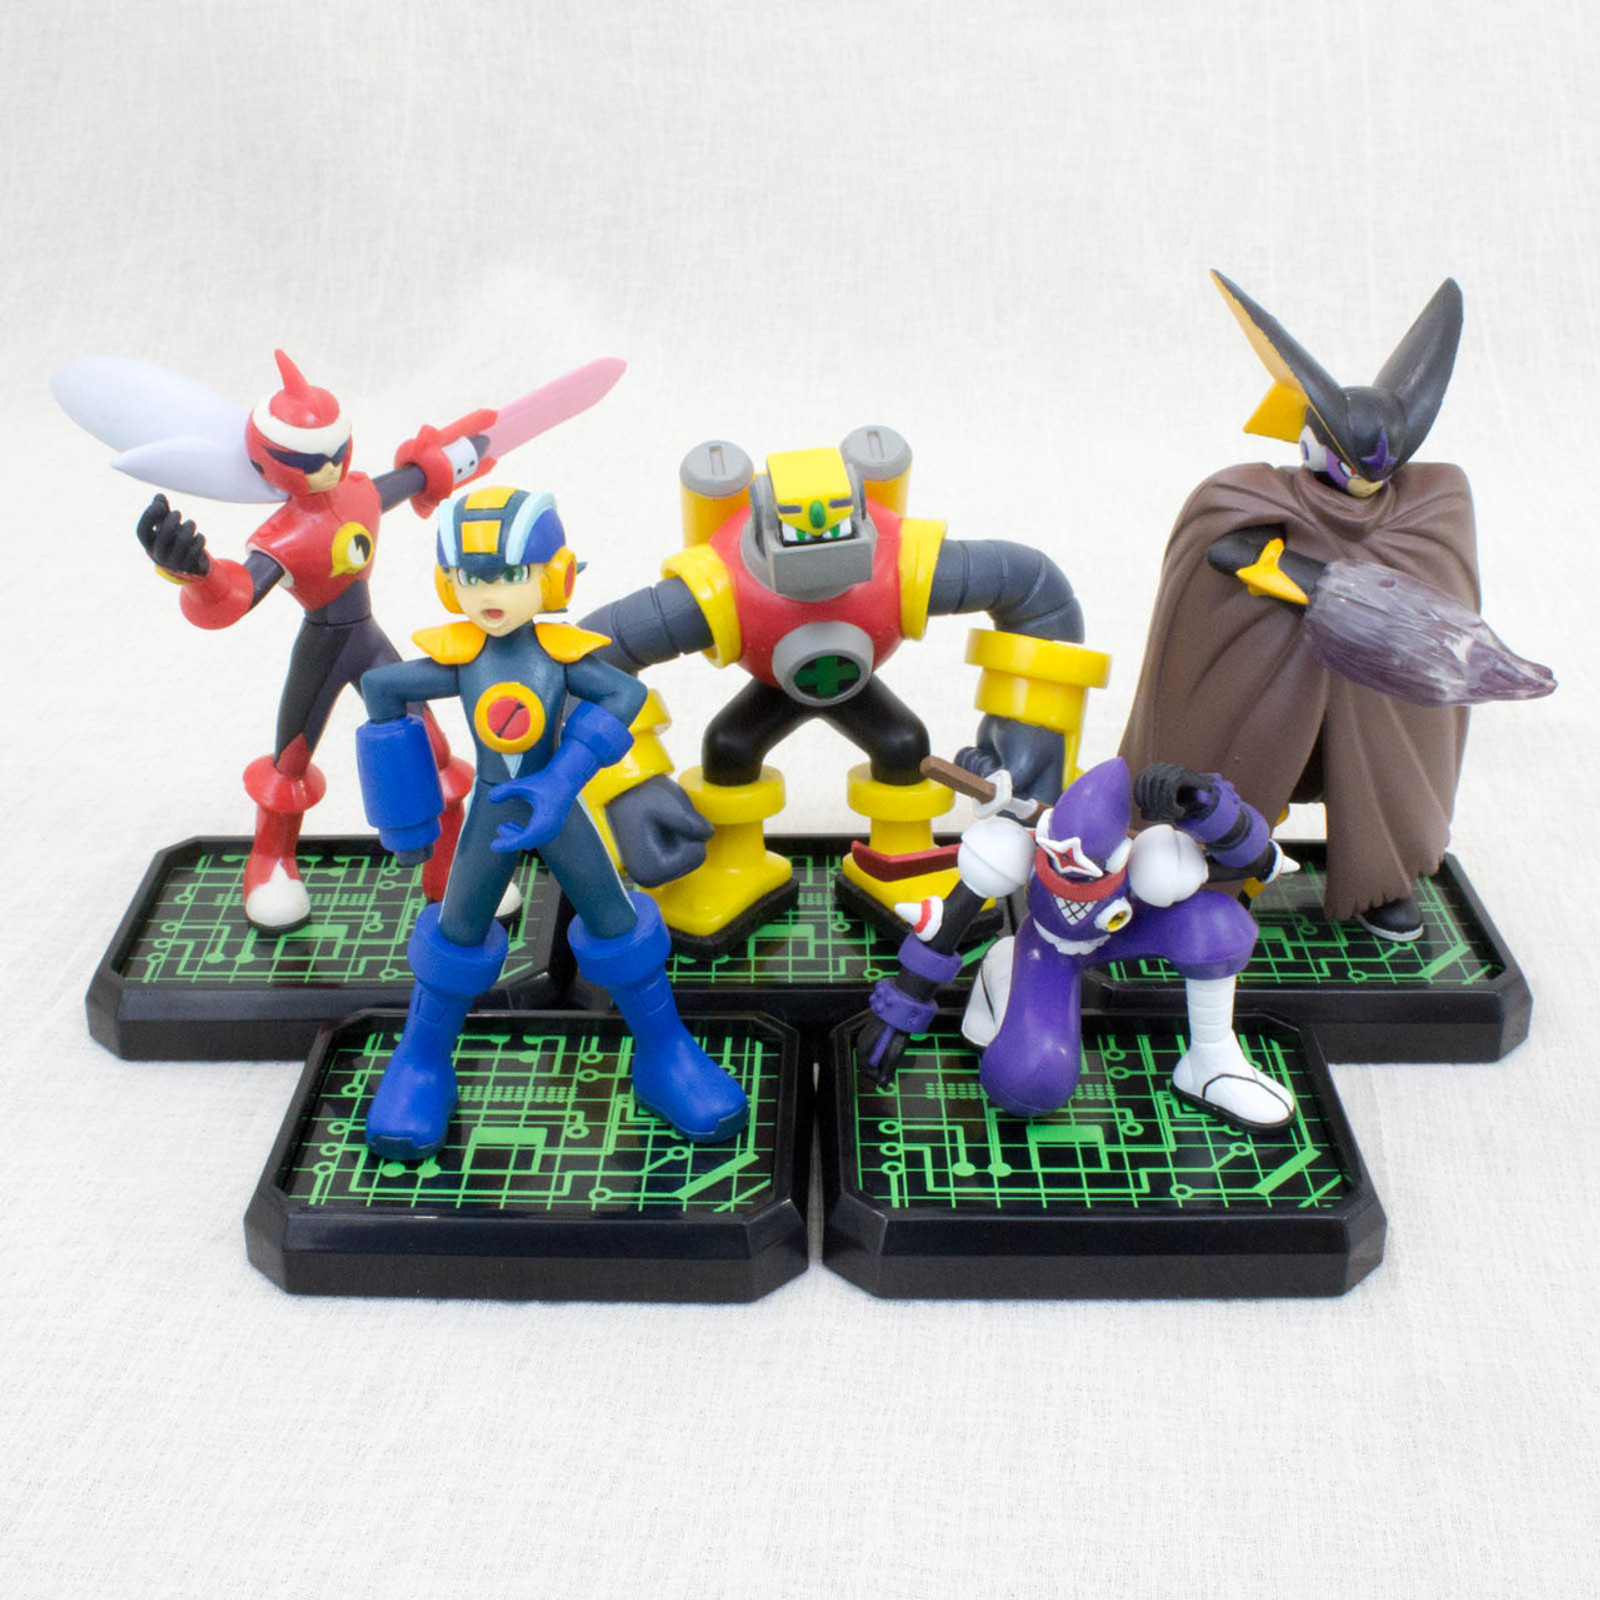 Rockman Exe Mega man Rockin' Box Figure Set BANDAI JAPAN GAME NES